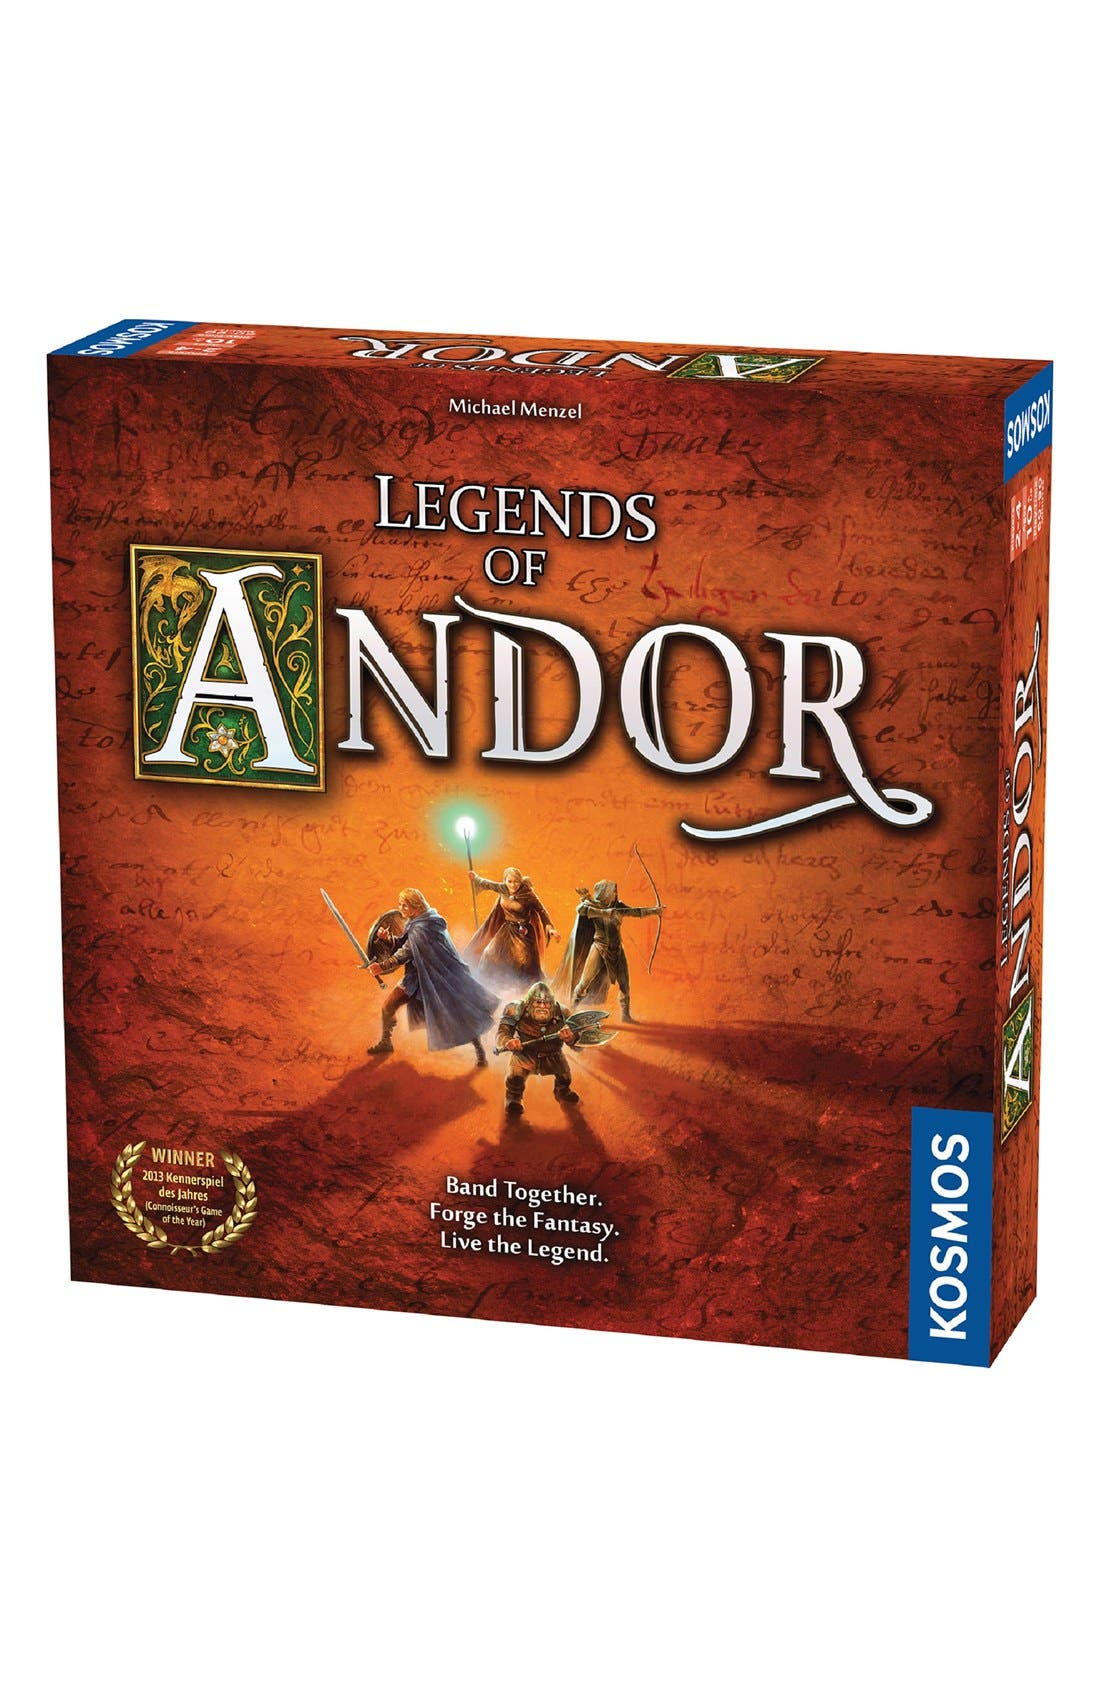 'Legends of Andor' Base Board Game,                             Main thumbnail 1, color,                             200